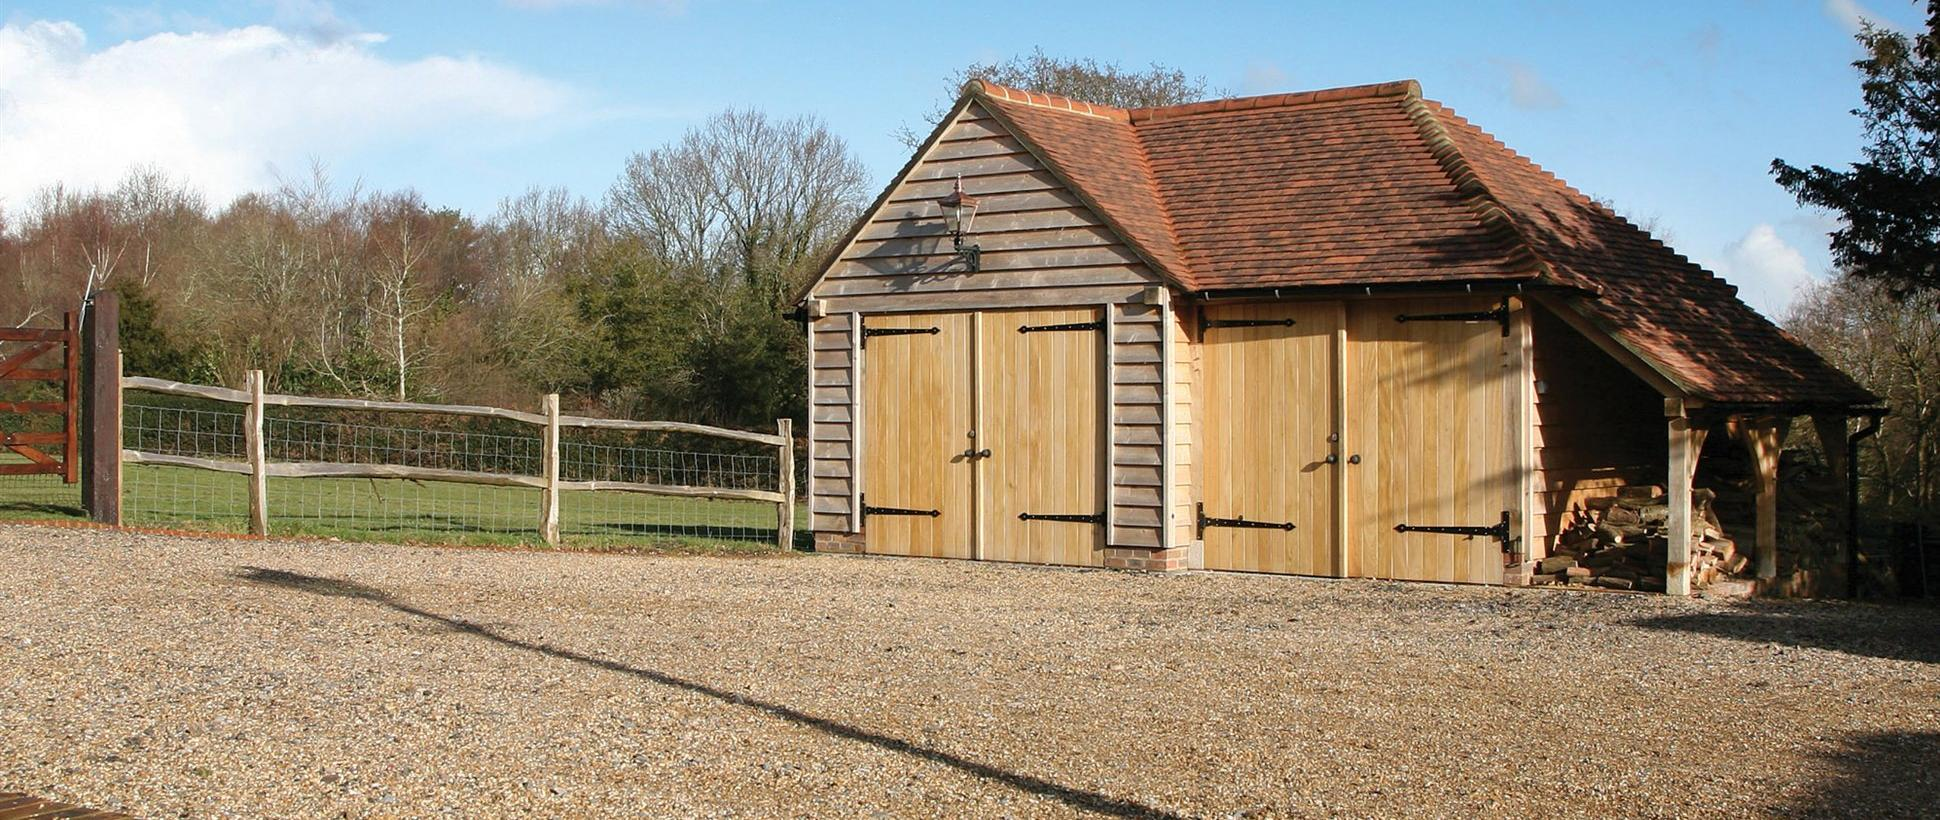 2 Bay Bespoke Garage & Log Store